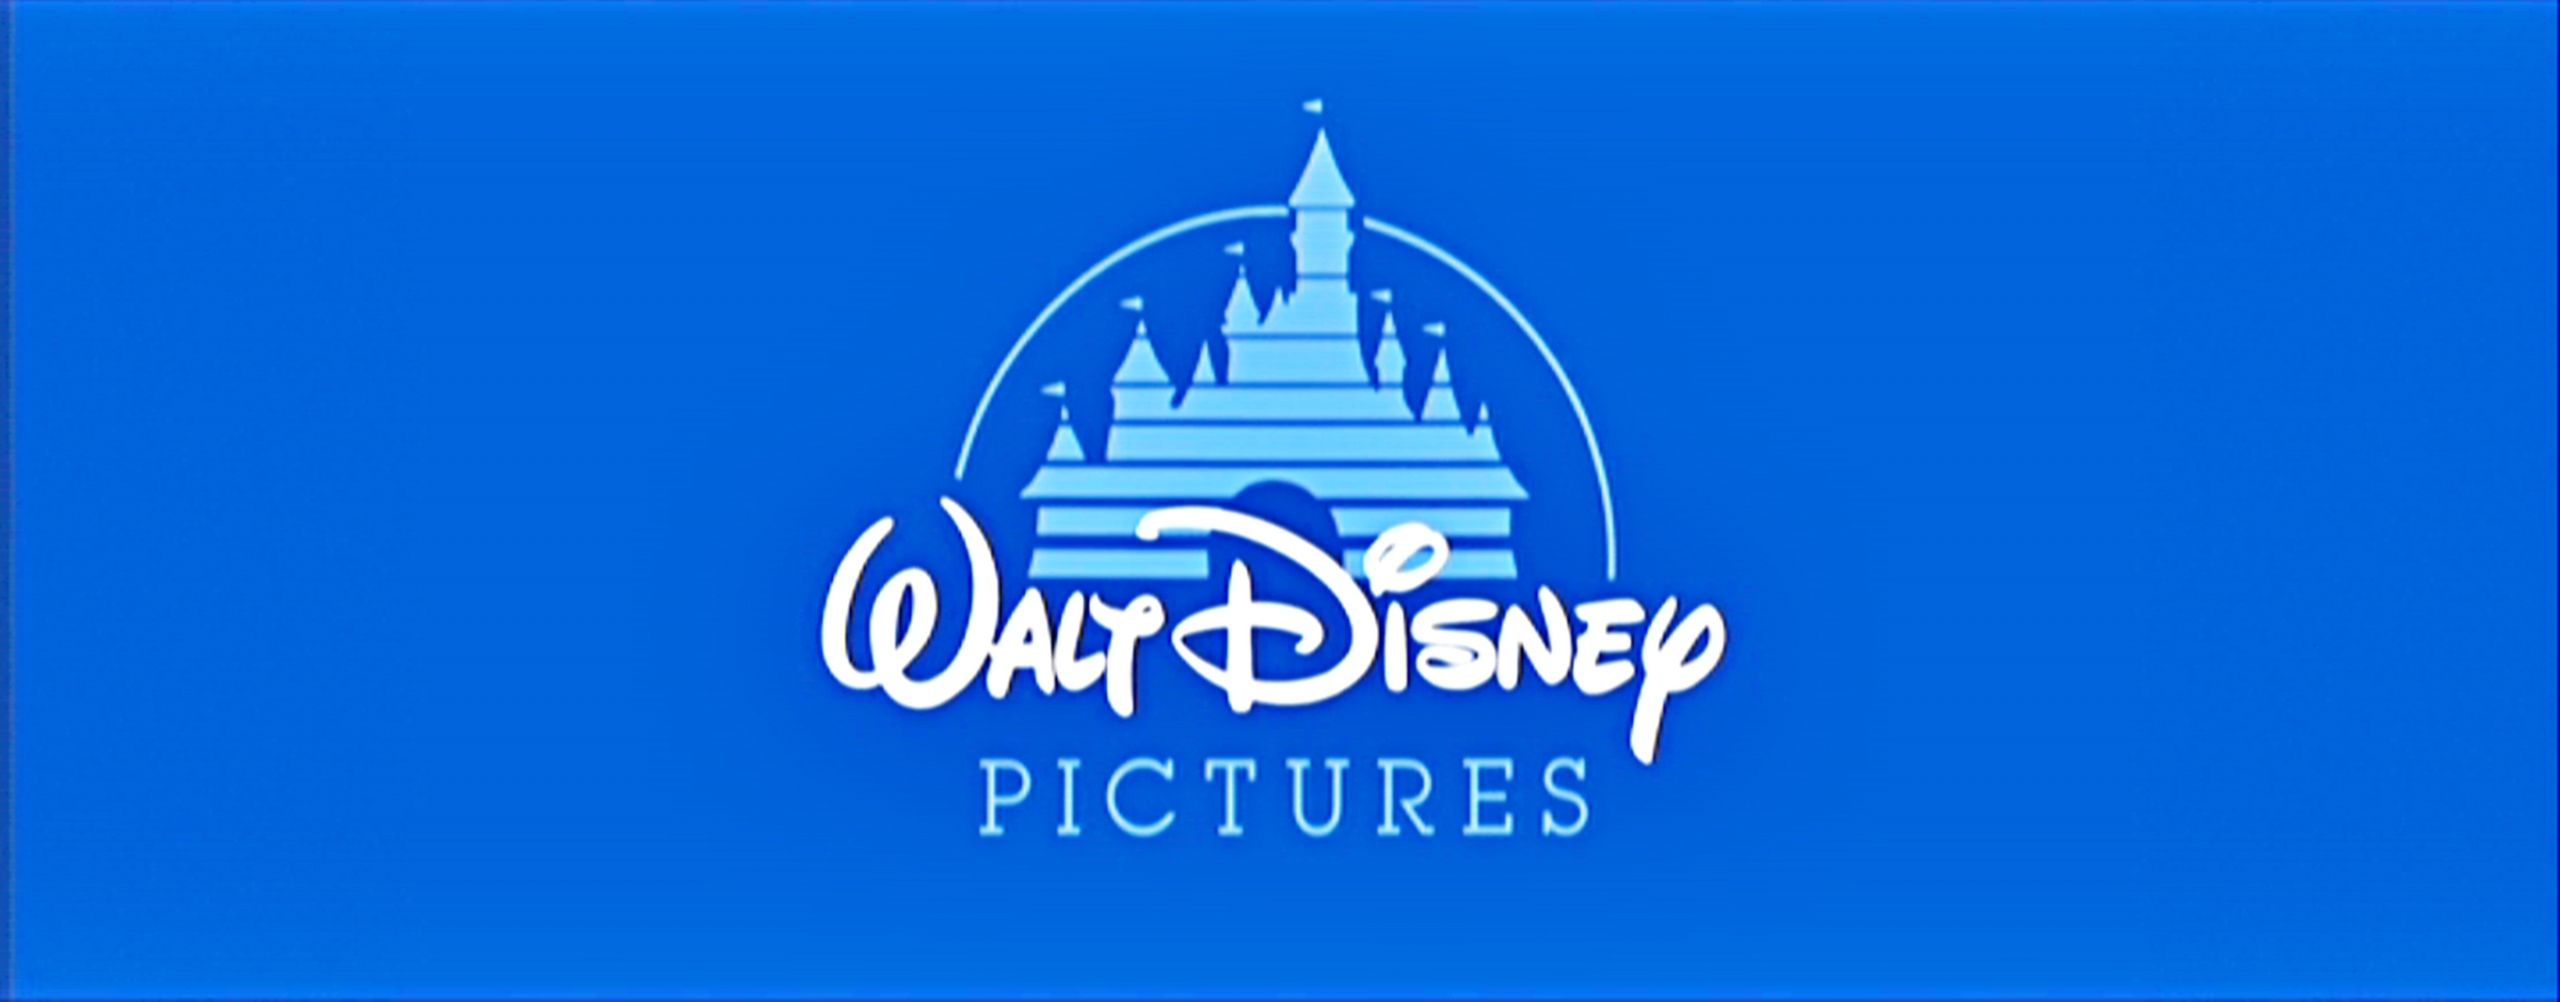 Walt Disney Pictures | Film | Pinterest